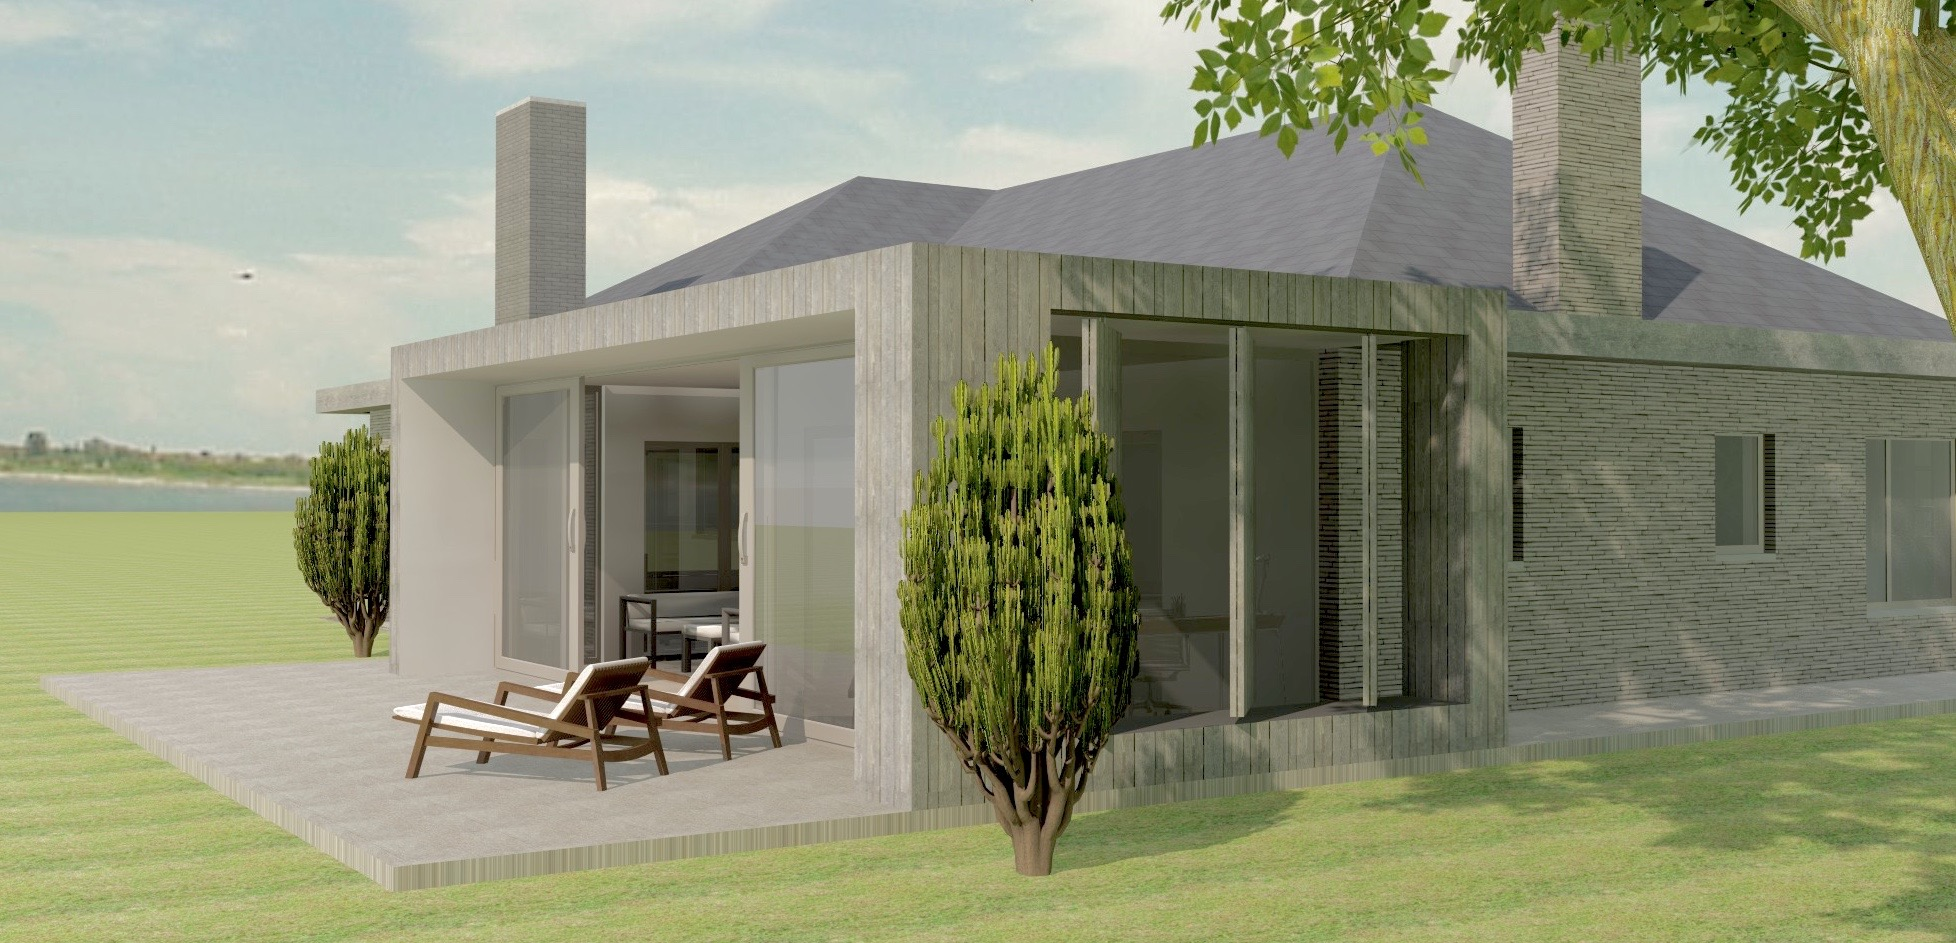 Lovendegem renovatie bungalow- veranda - Archion by Geert Van Rysseghem.jpg